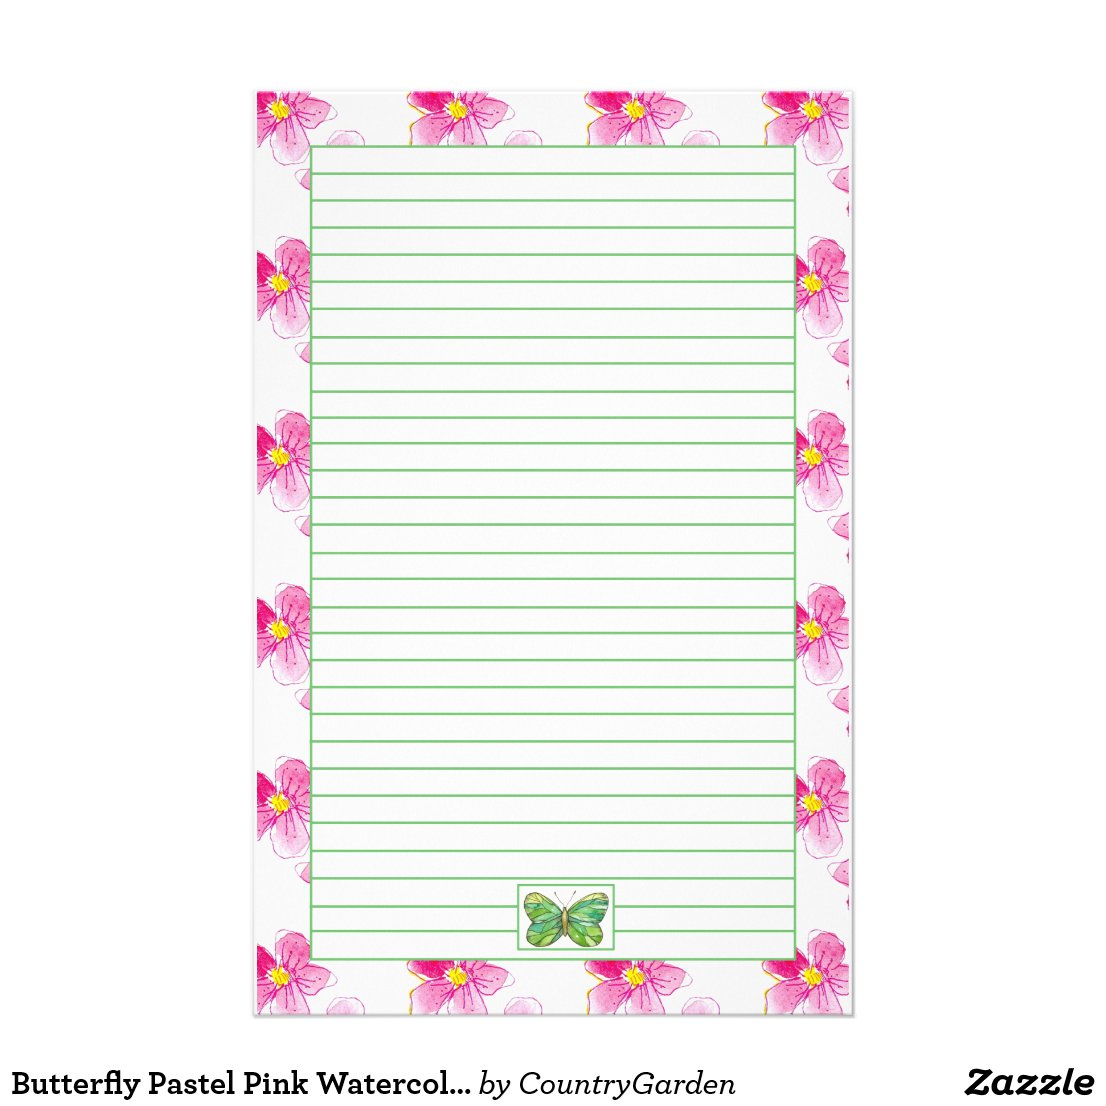 butterfly writing paper Find great deals on ebay for butterfly stationery shop with confidence monarch butterfly duo, personalized writing paper stationery set, set of 12.